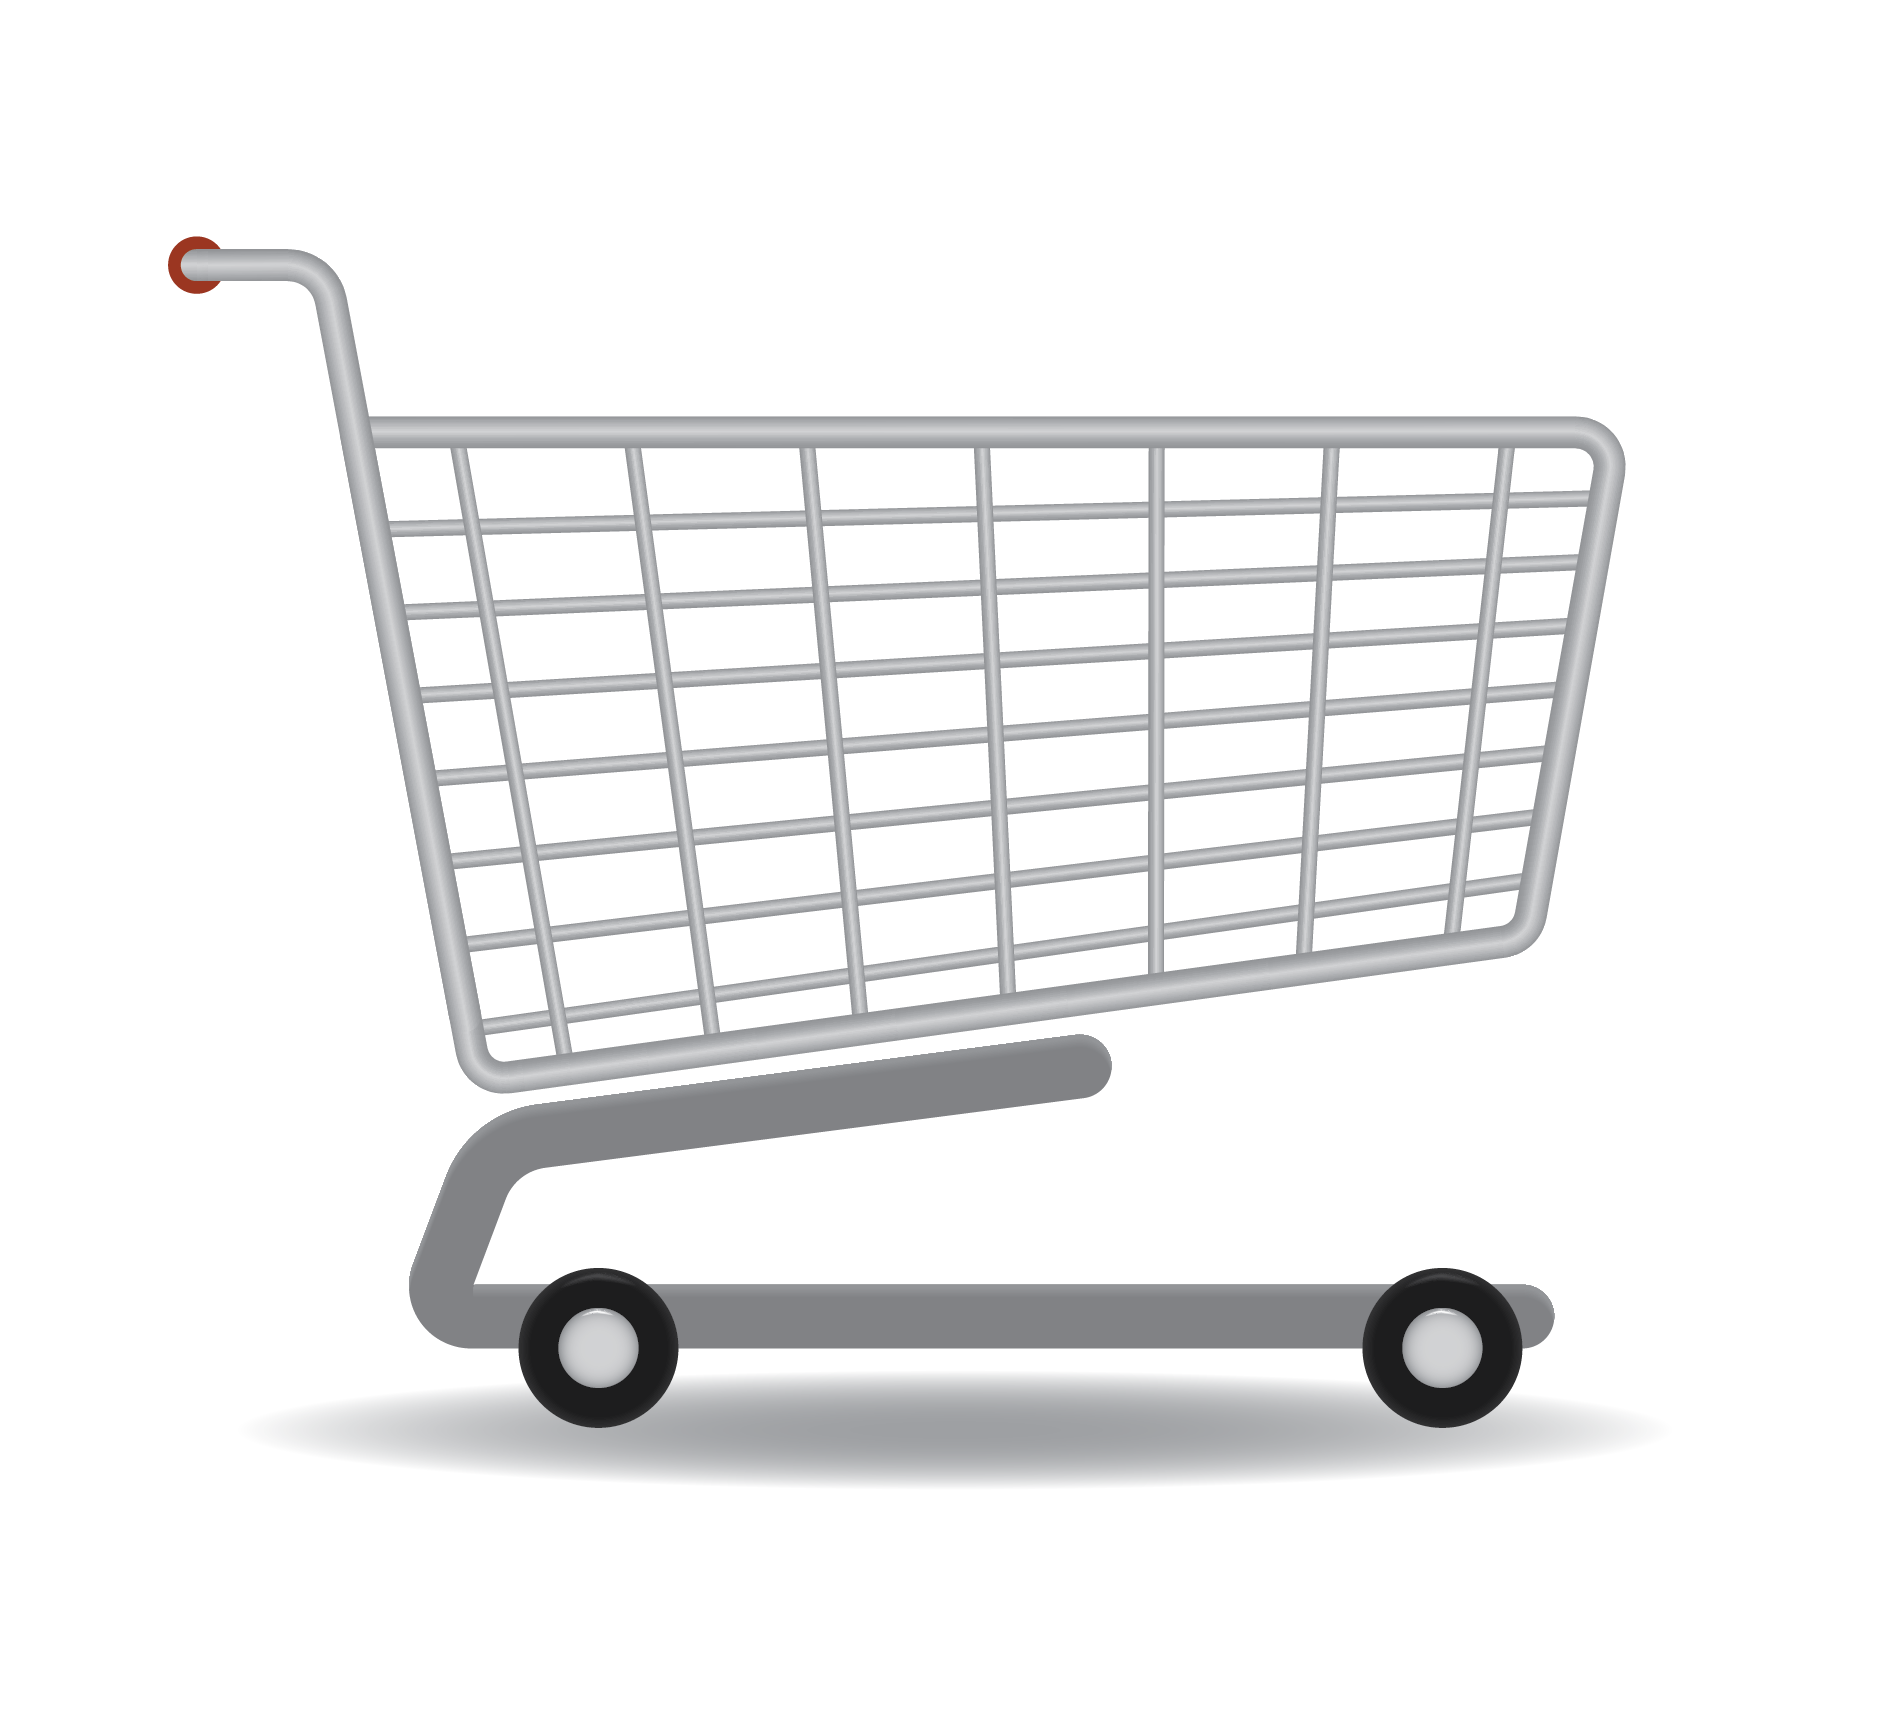 Vegetable clipart trolley. Shopping cart pinterest and